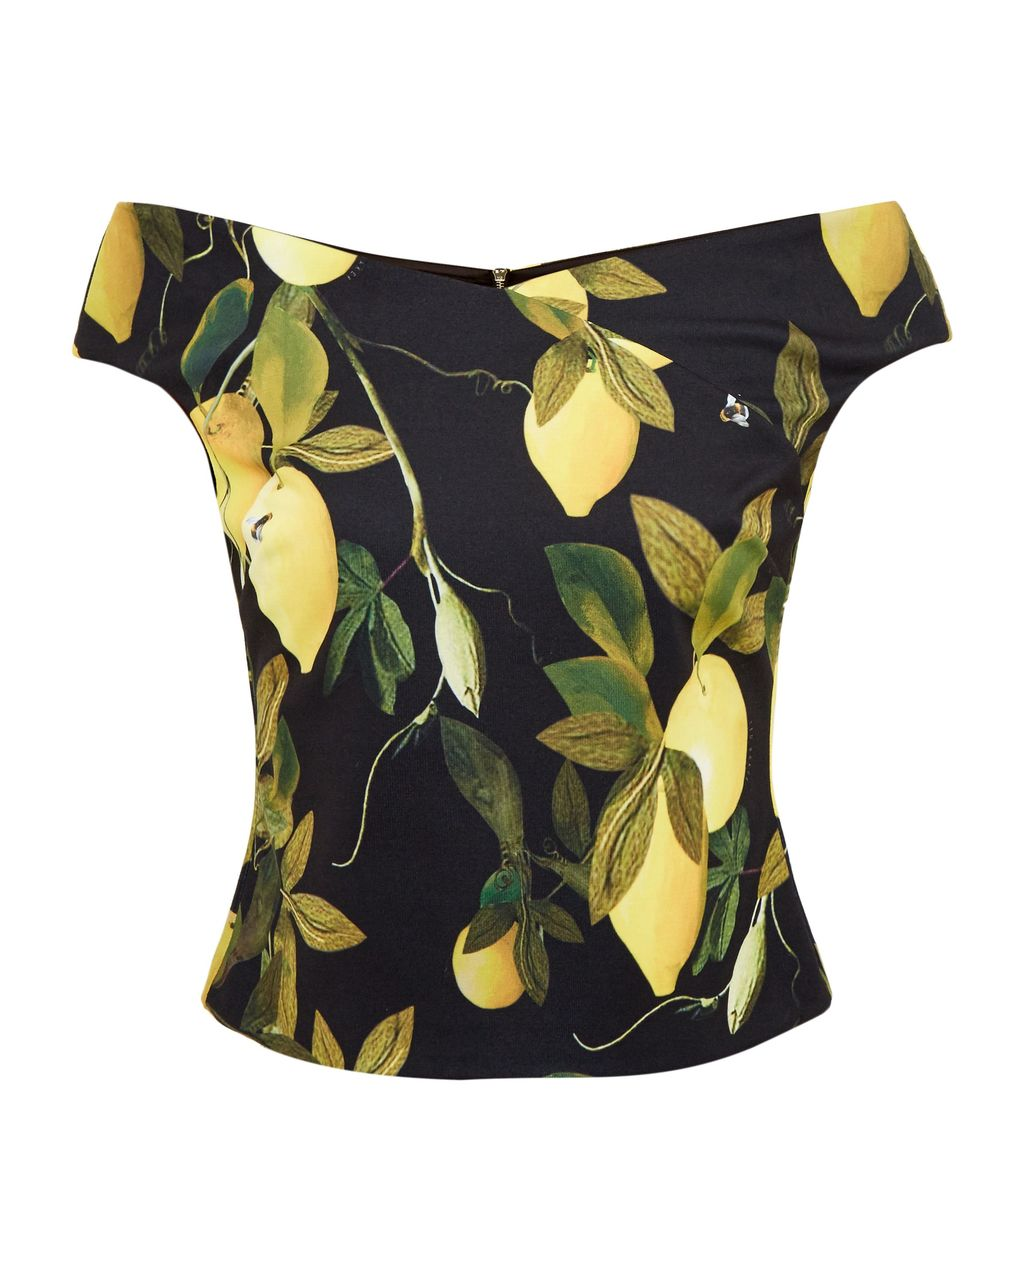 Tiffi Citrus Vine Bardot Top, Black - neckline: off the shoulder; sleeve style: capped; secondary colour: yellow; predominant colour: black; occasions: casual, holiday, creative work; length: standard; style: top; fibres: polyester/polyamide - stretch; fit: tailored/fitted; sleeve length: short sleeve; pattern type: fabric; pattern: patterned/print; texture group: jersey - stretchy/drapey; pattern size: big & busy (top); season: a/w 2016; wardrobe: highlight